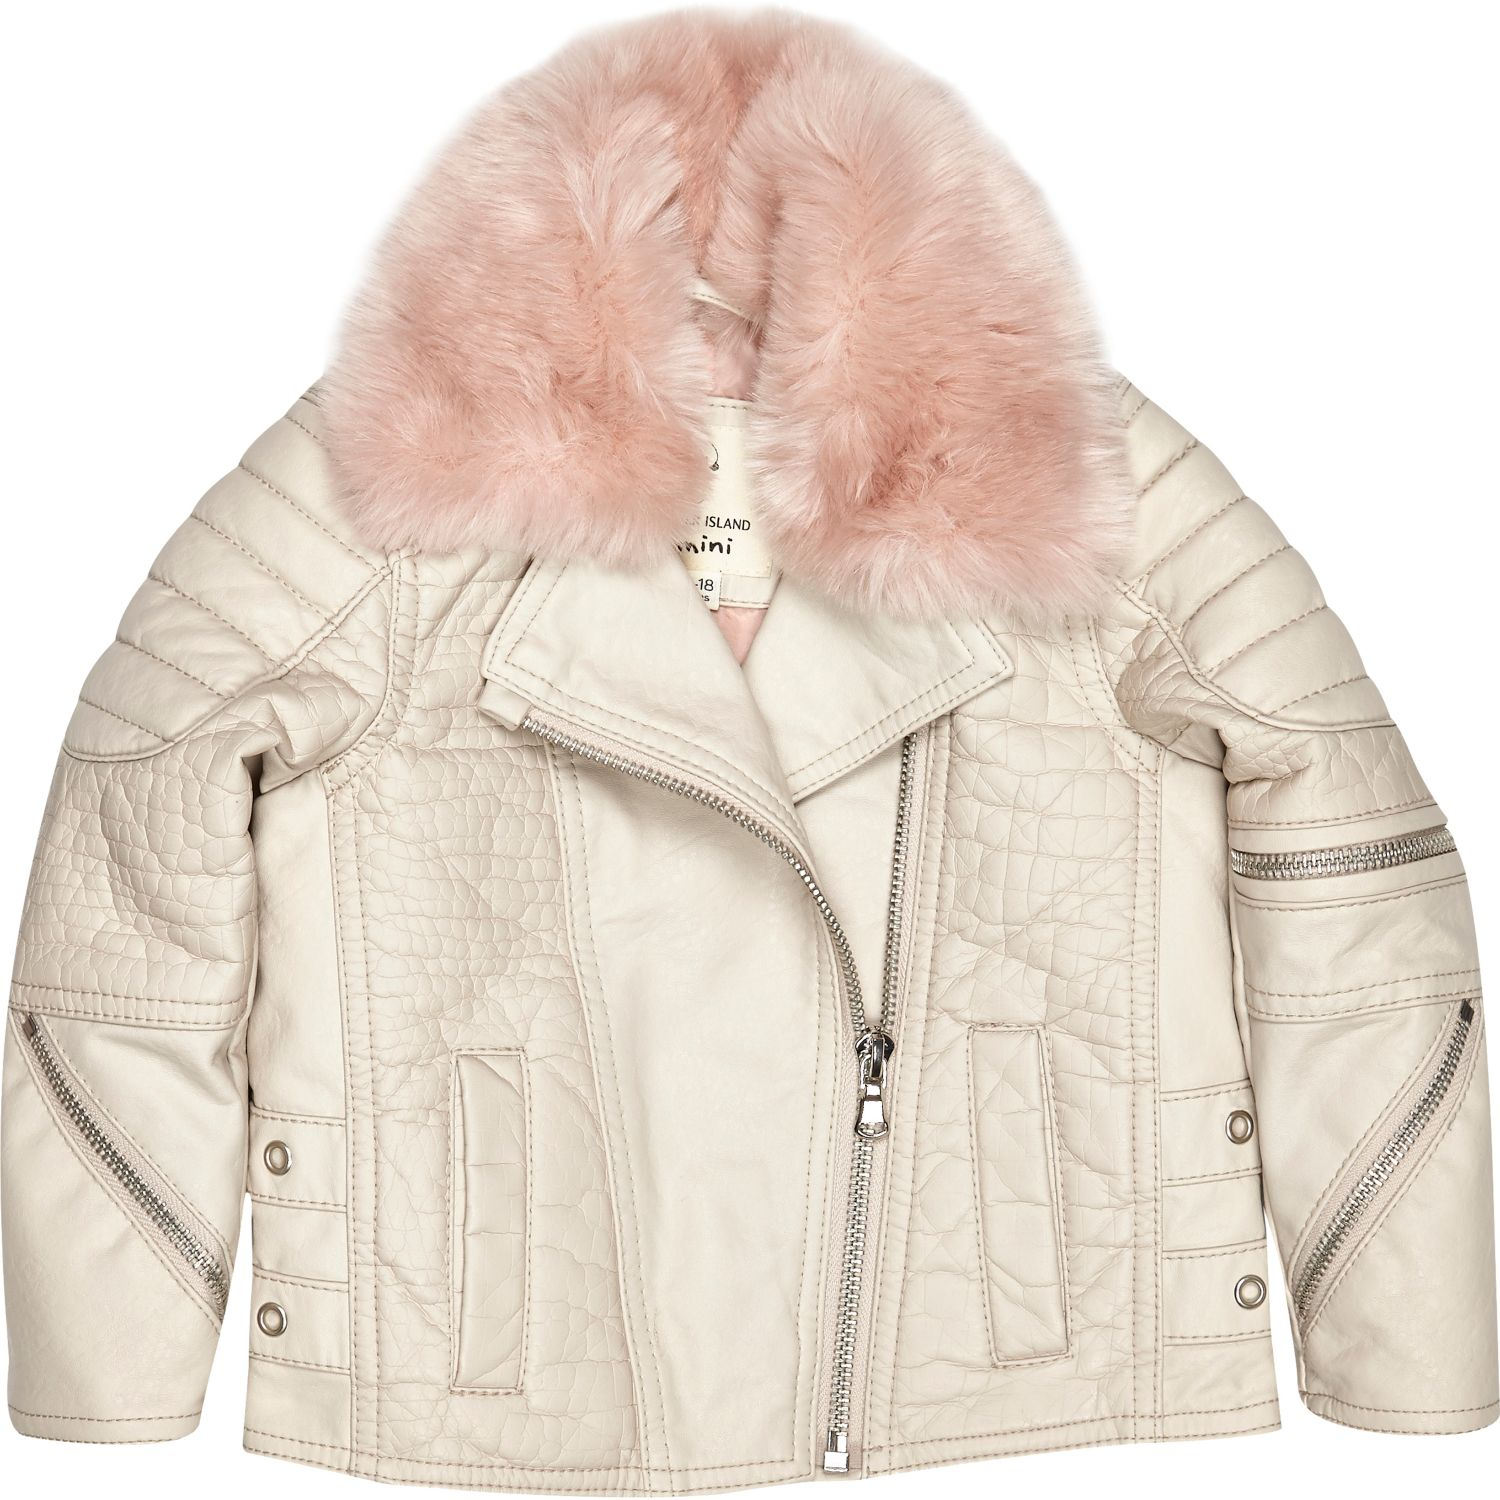 9d26a5b8e Baby Girl Leather Jacket With Fur - Cairoamani.com